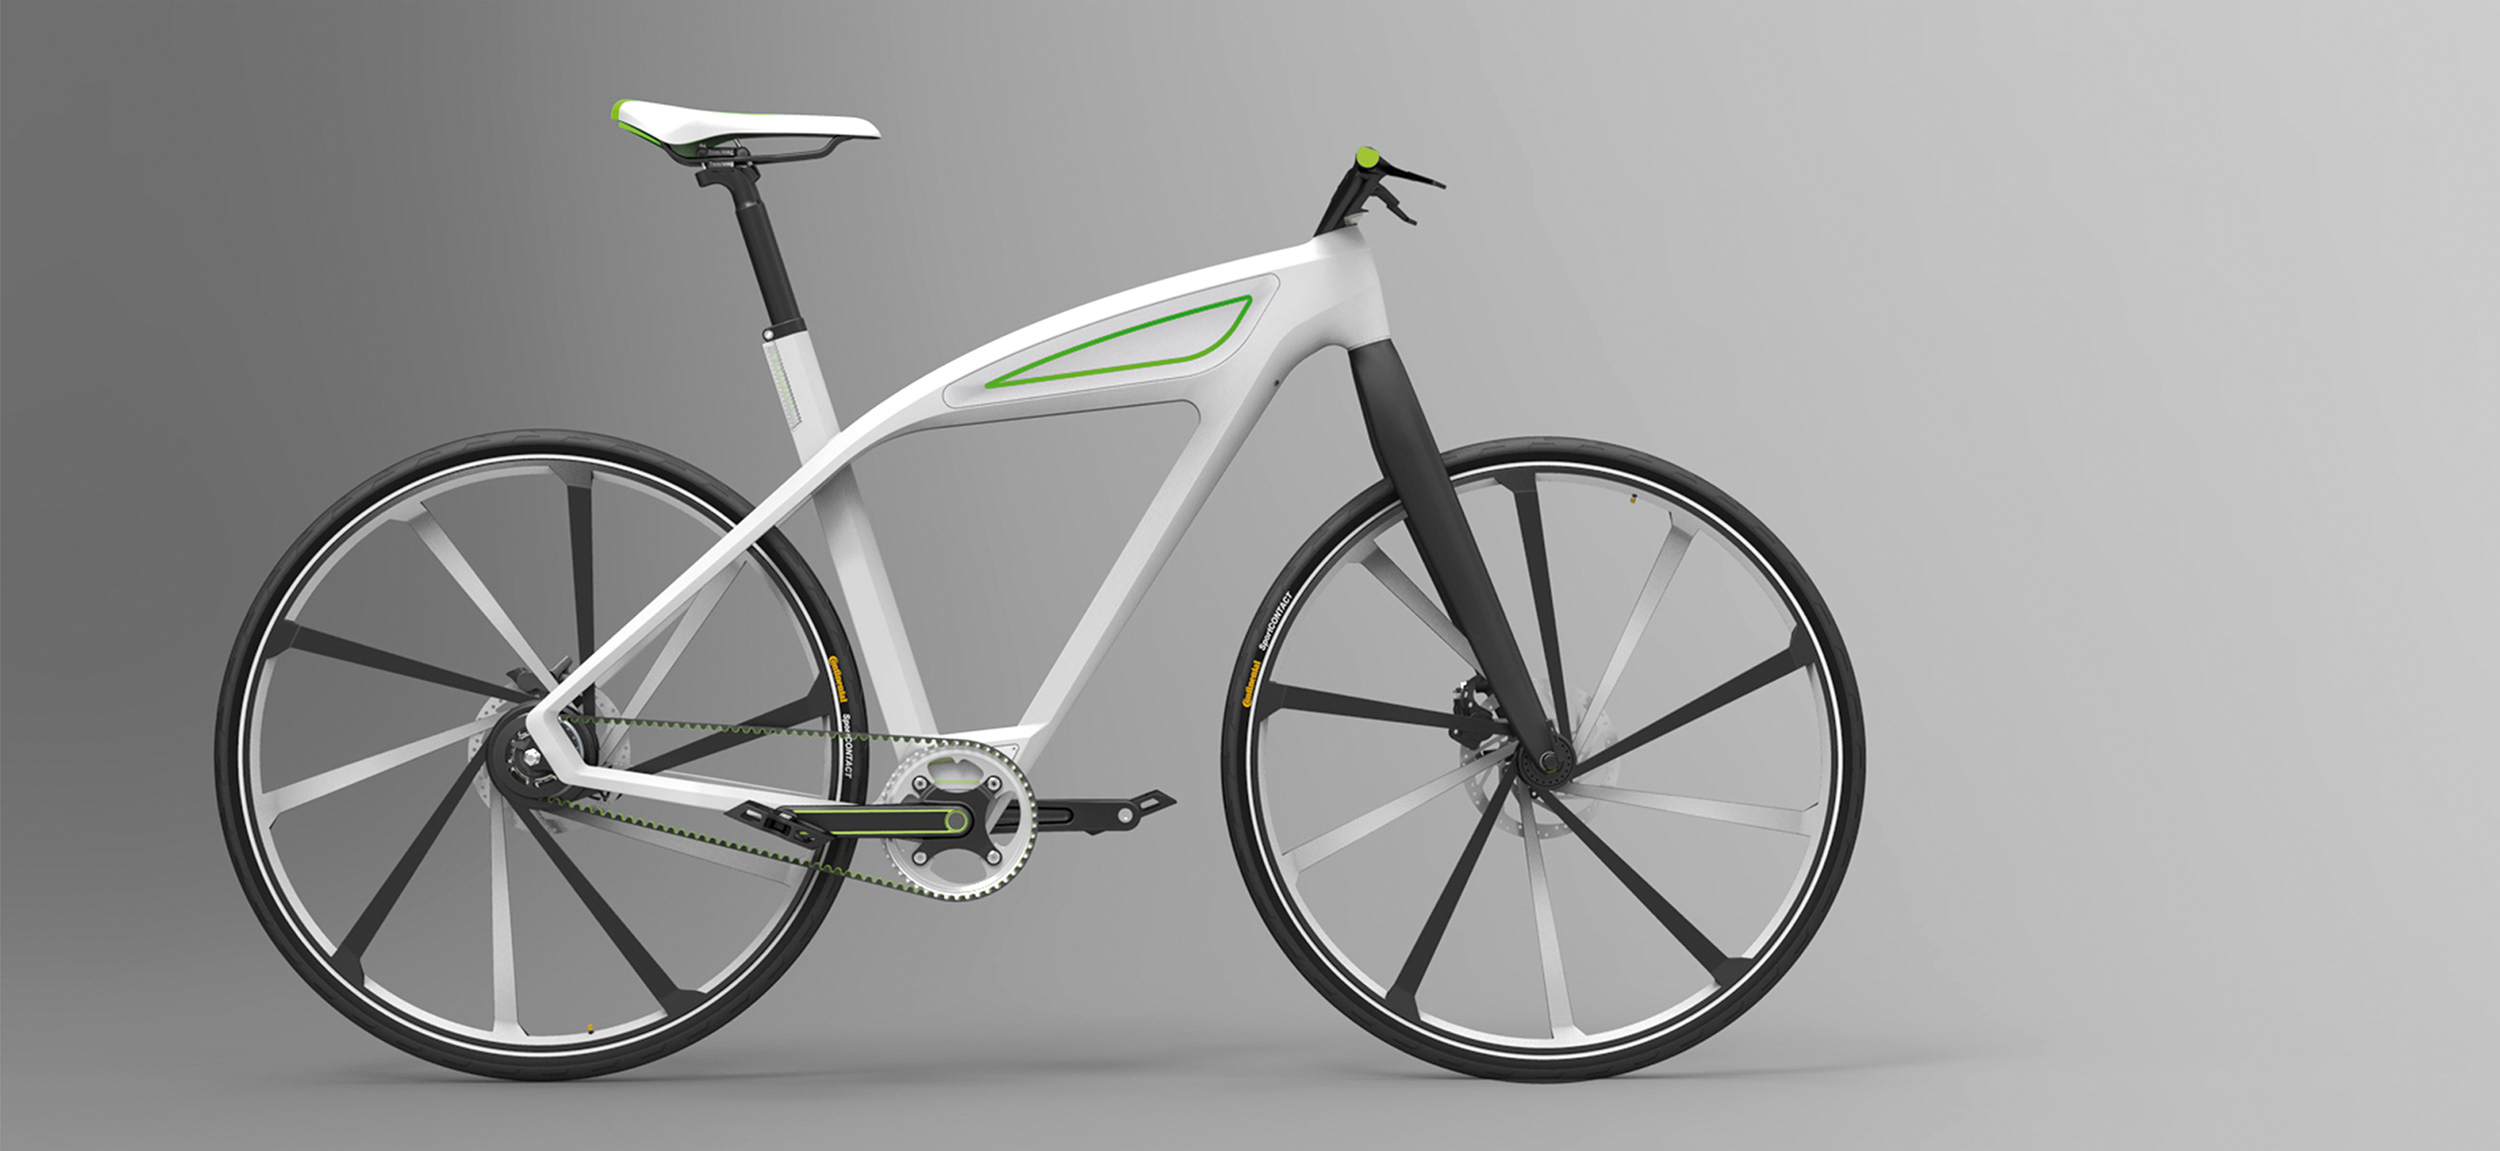 eCycle-electric bicycle design concept